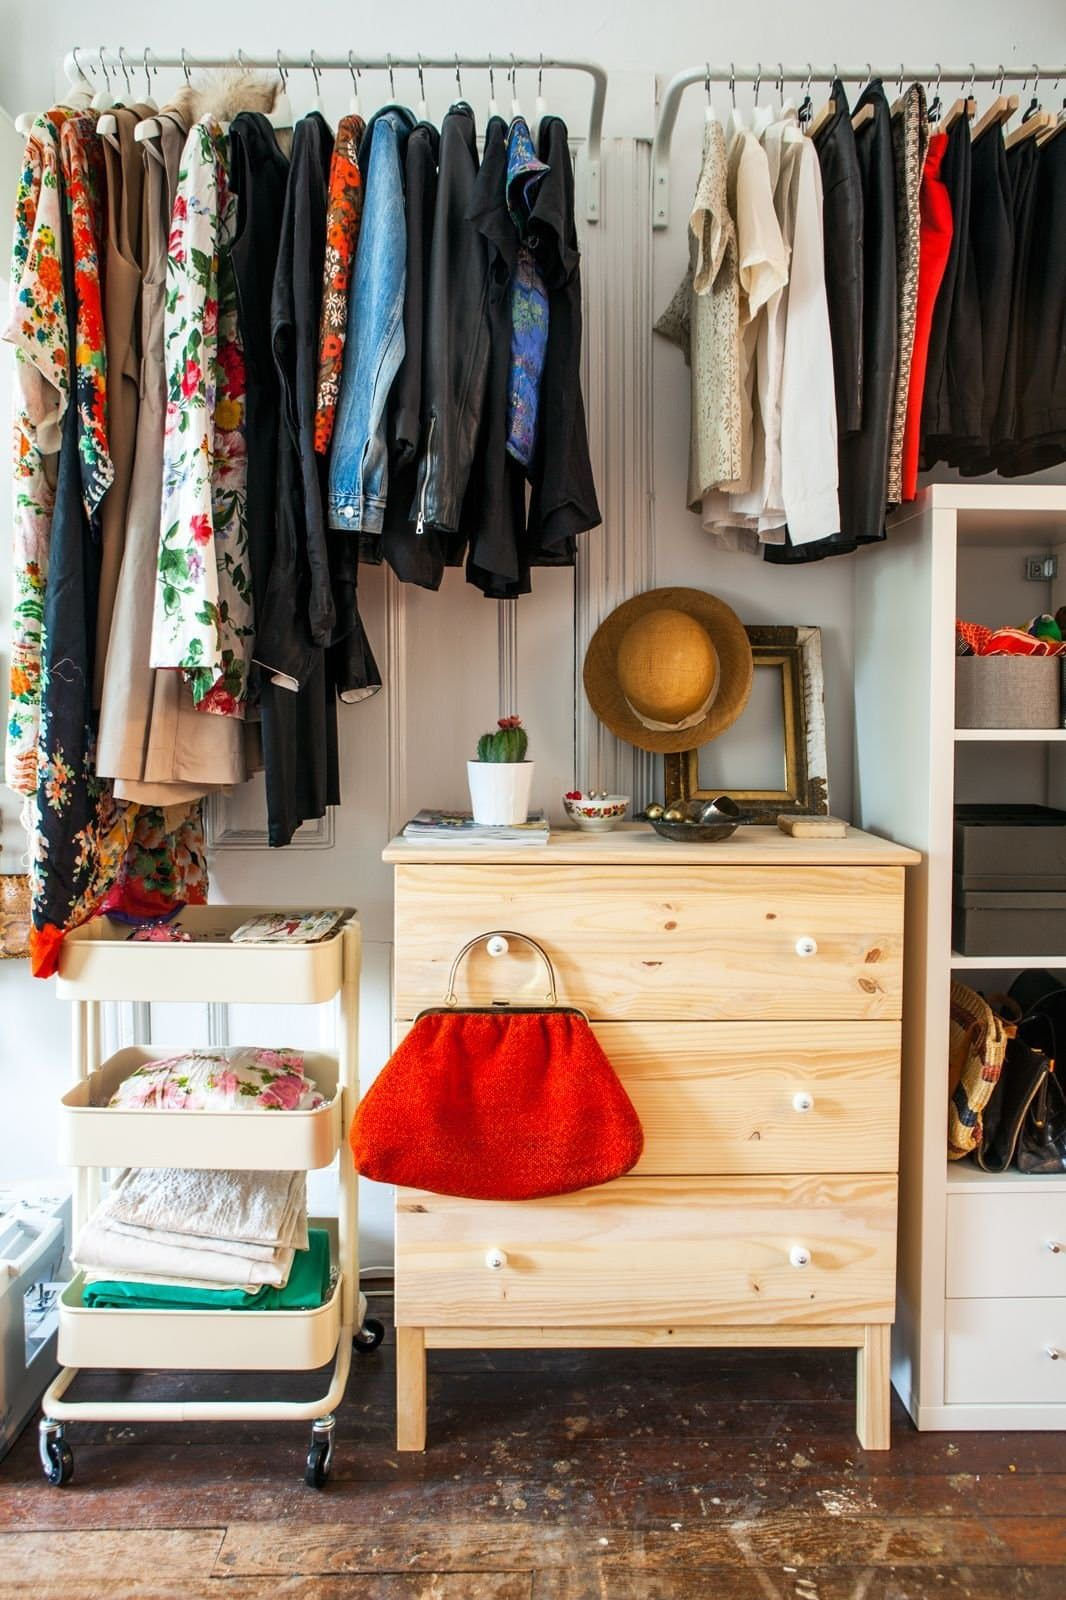 How To Cope With Little Or No Bedroom Storage Maximize The